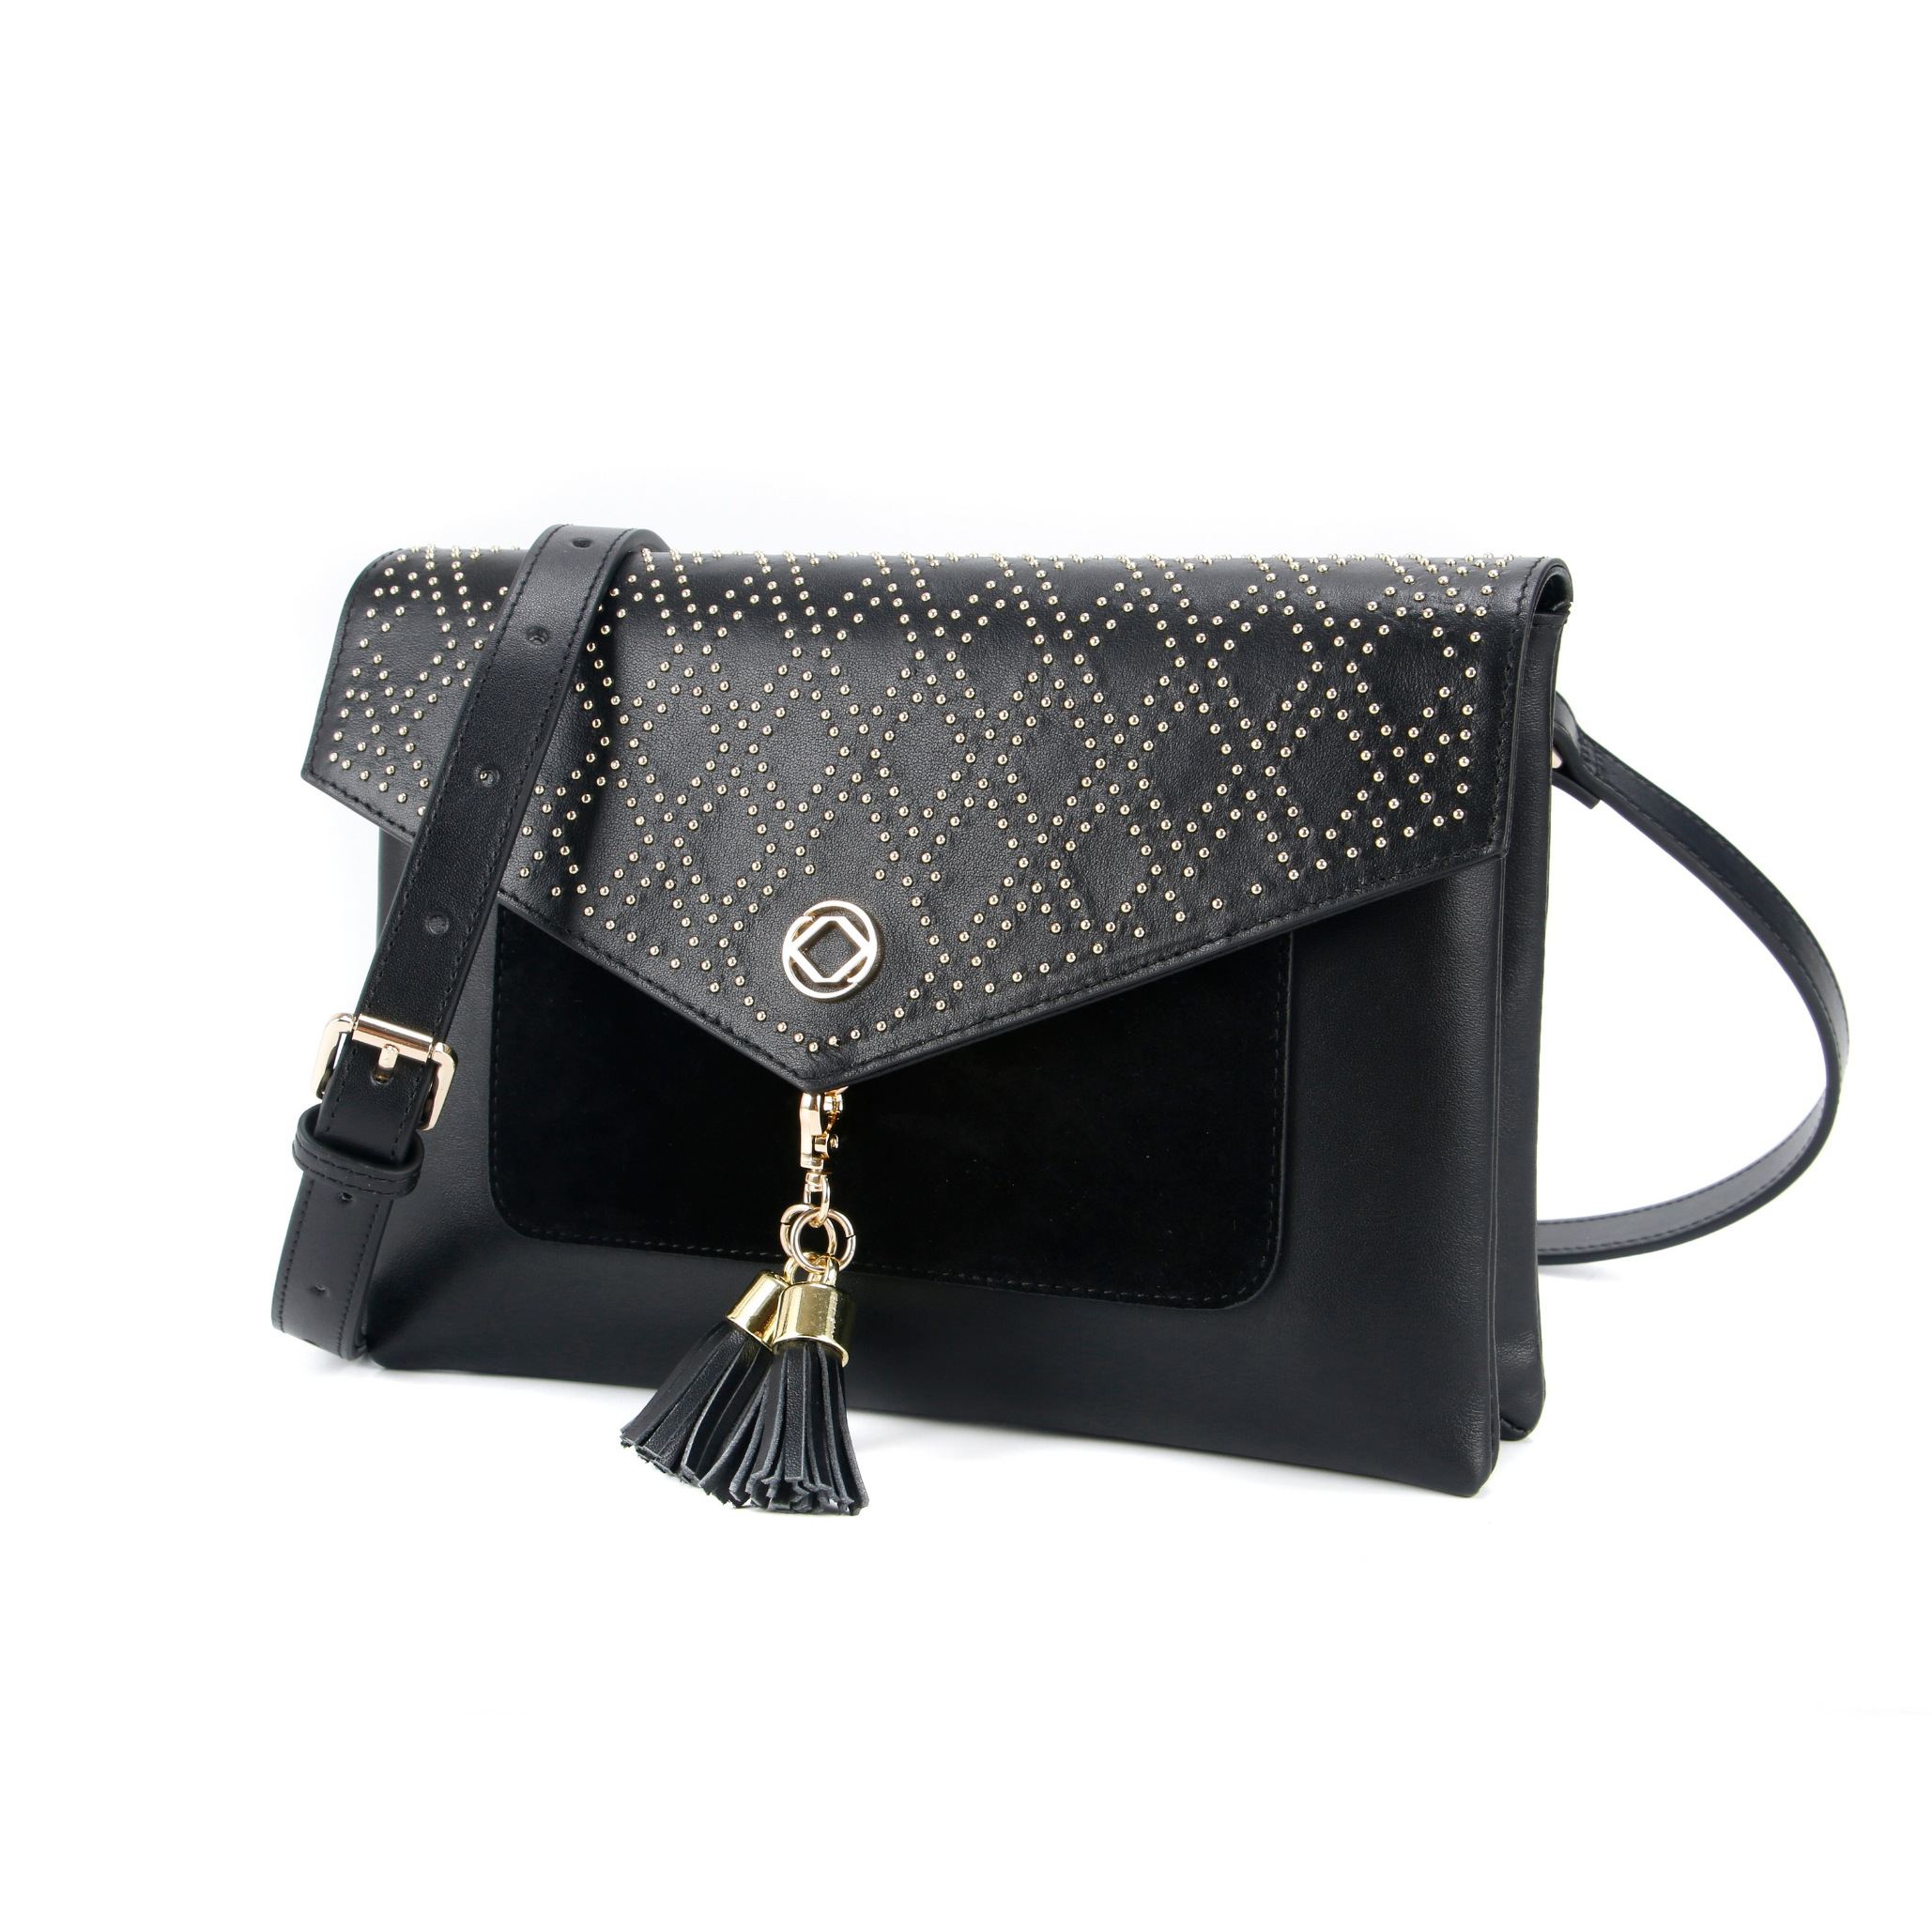 Harry Studded leather purse with a cross body strap. Image shows front view with removable tassels and cross body buckle strap.